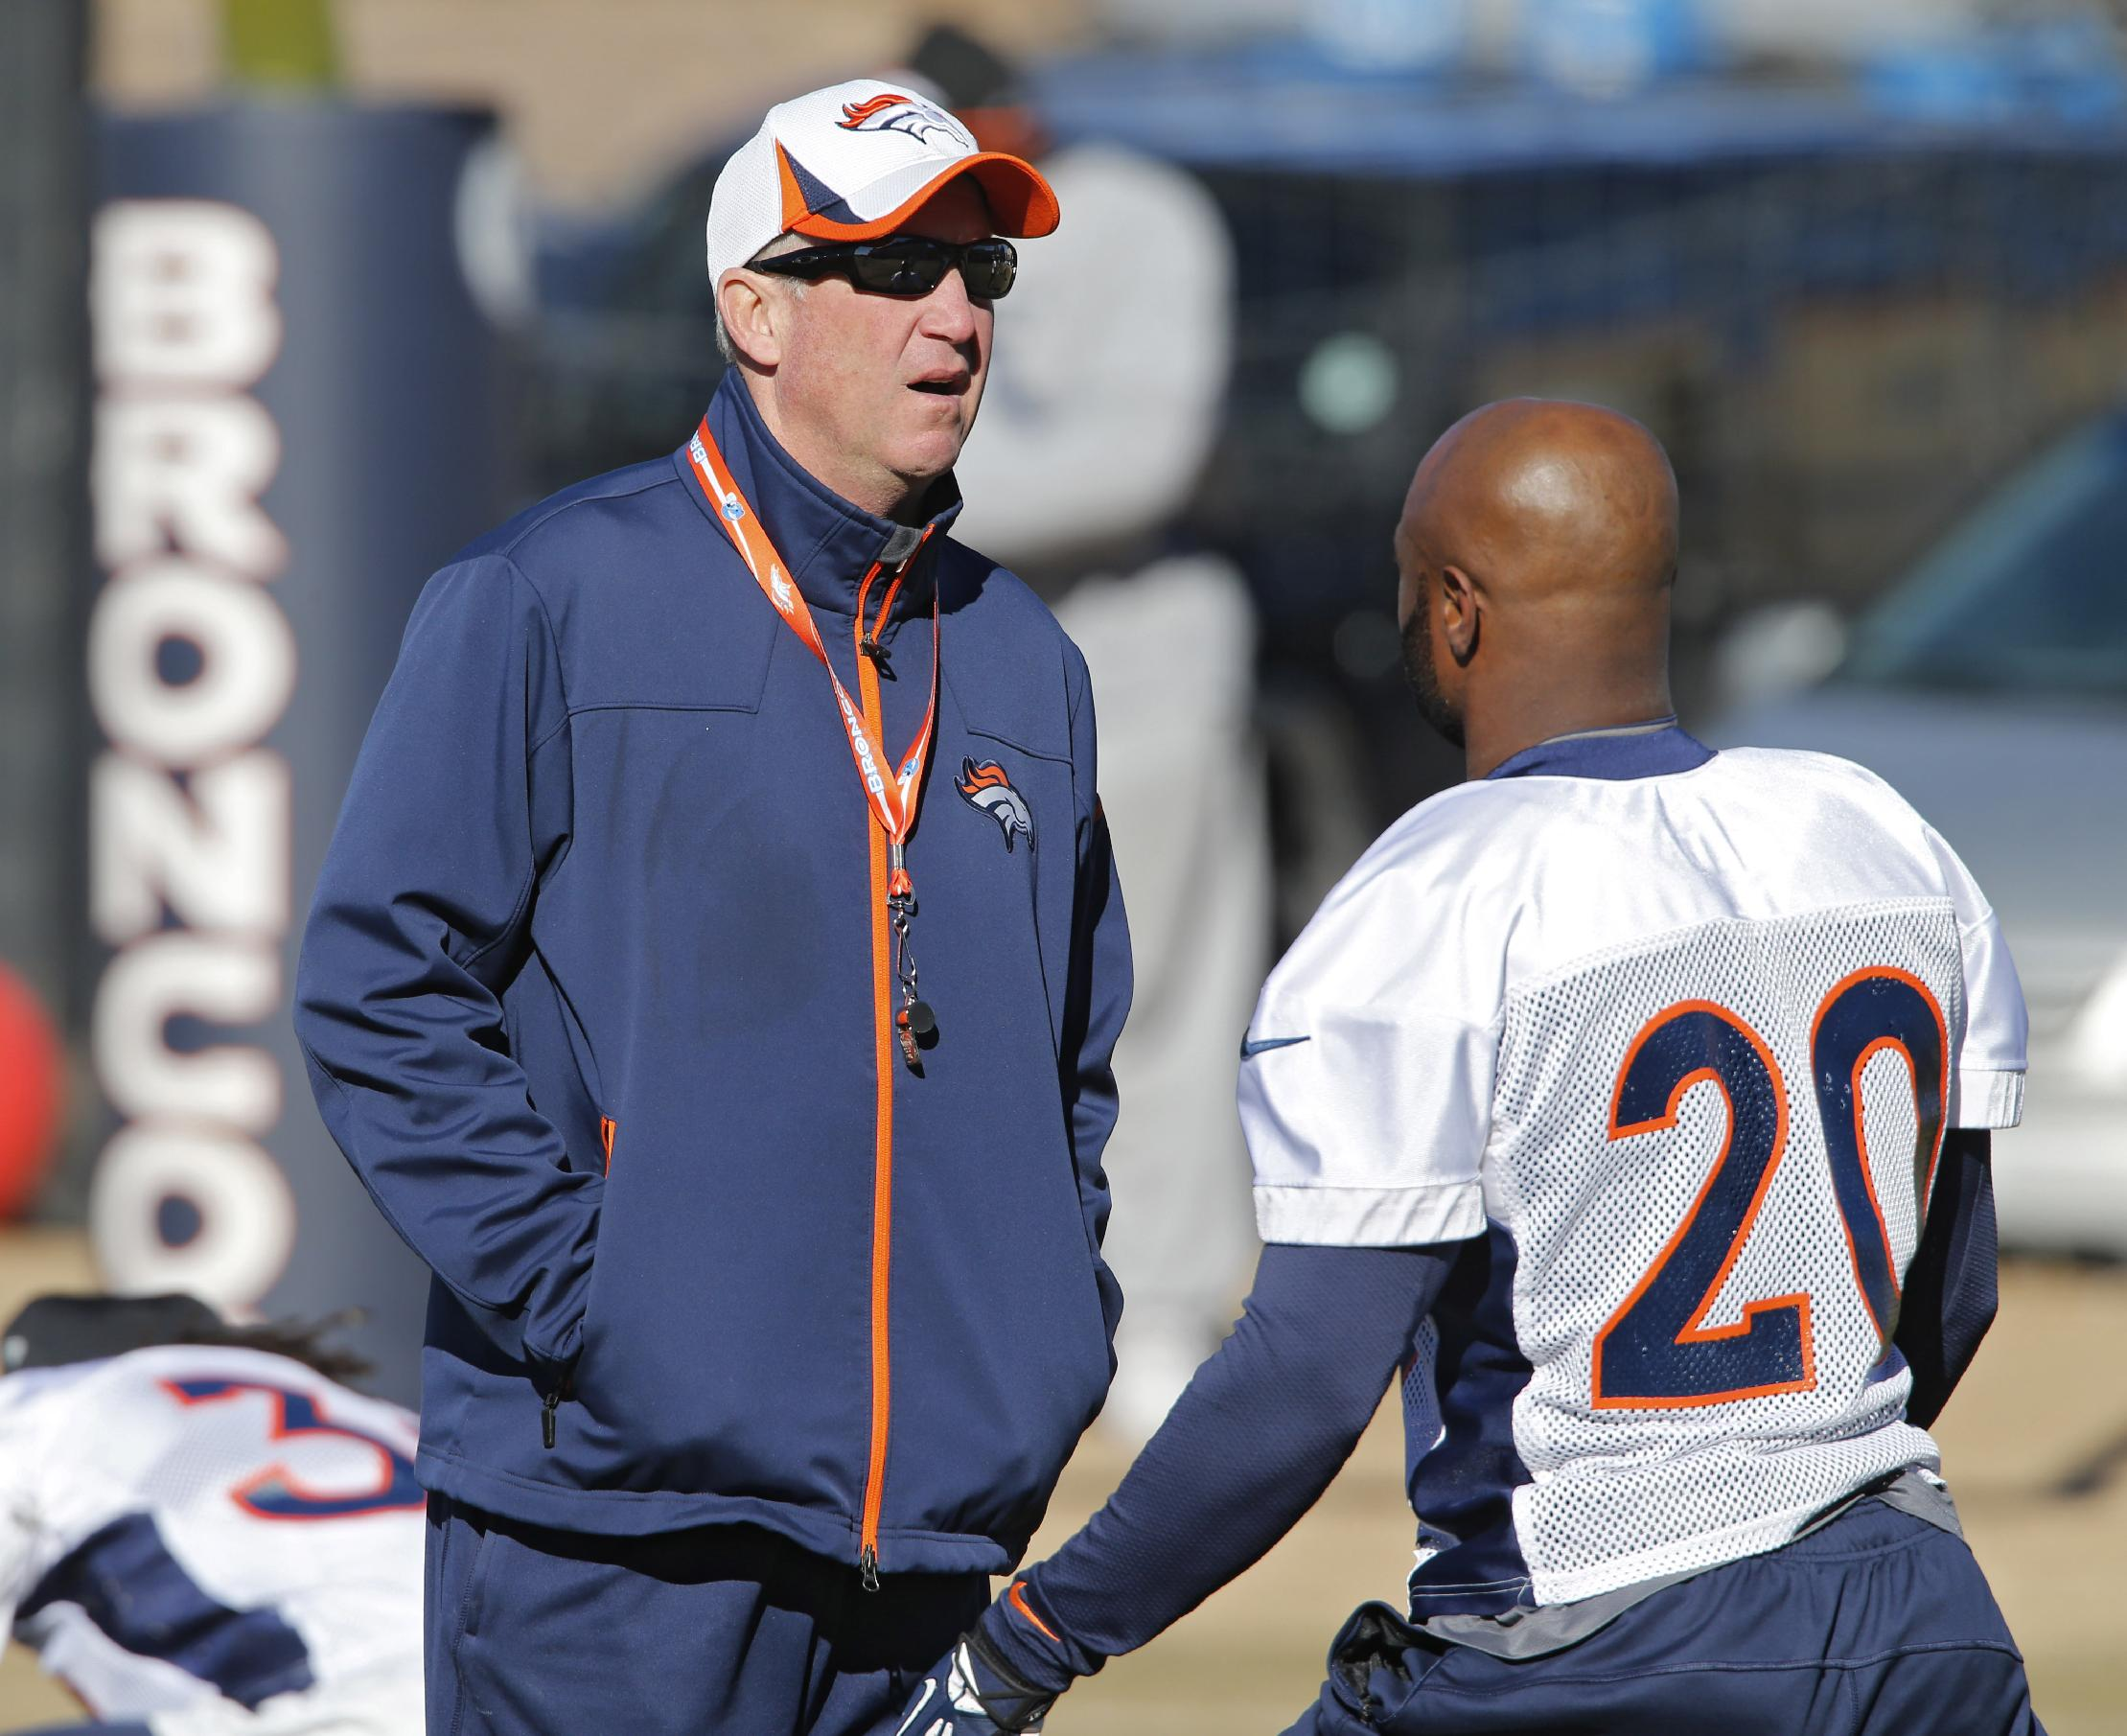 Denver Broncos head coach talks with free safety Mike Adams (20) during NFL football practice at the team's training facility in Englewood, Colo., Saturday, Jan. 25, 2014. The Broncos are scheduled to play the Seattle Seahawks in Super Bowl XLVIII on Feb. 2